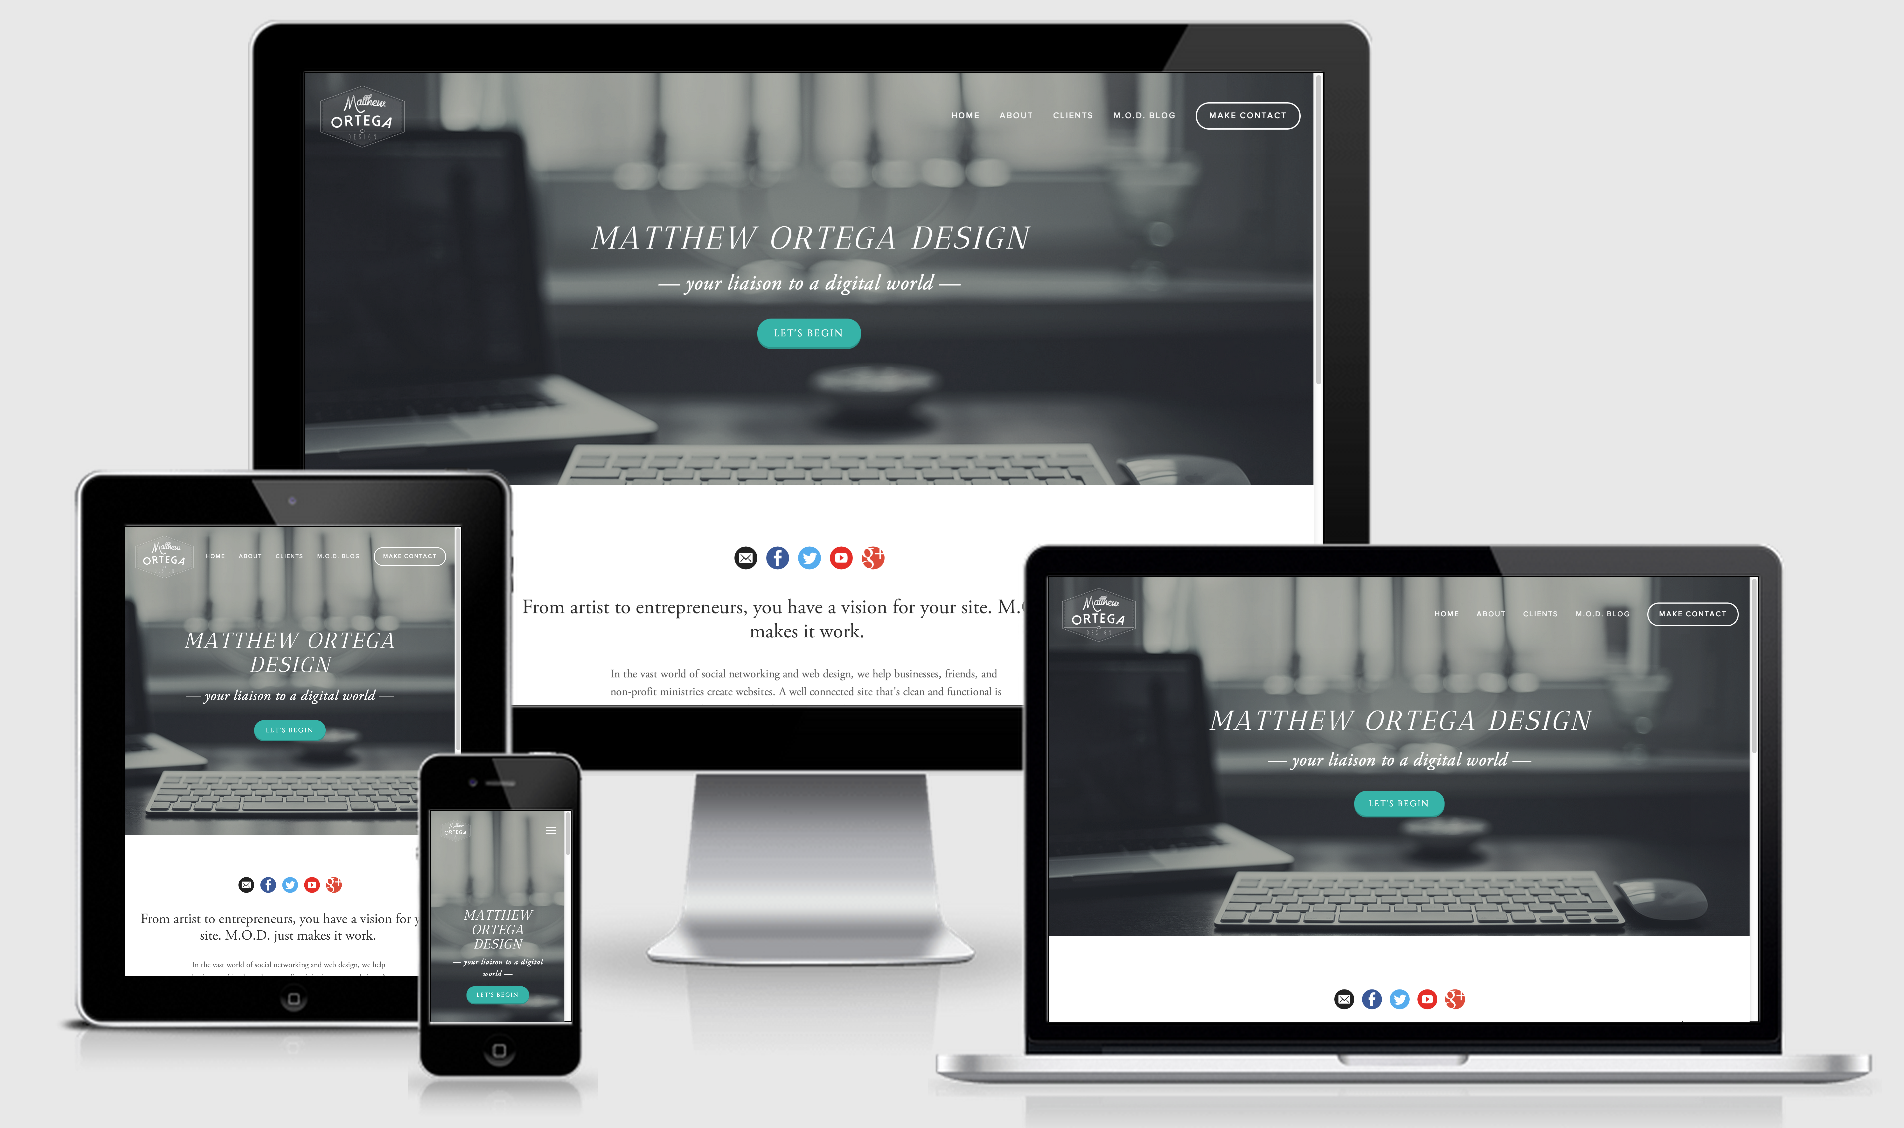 Matthew Ortega Design makes sure your site works on any device.